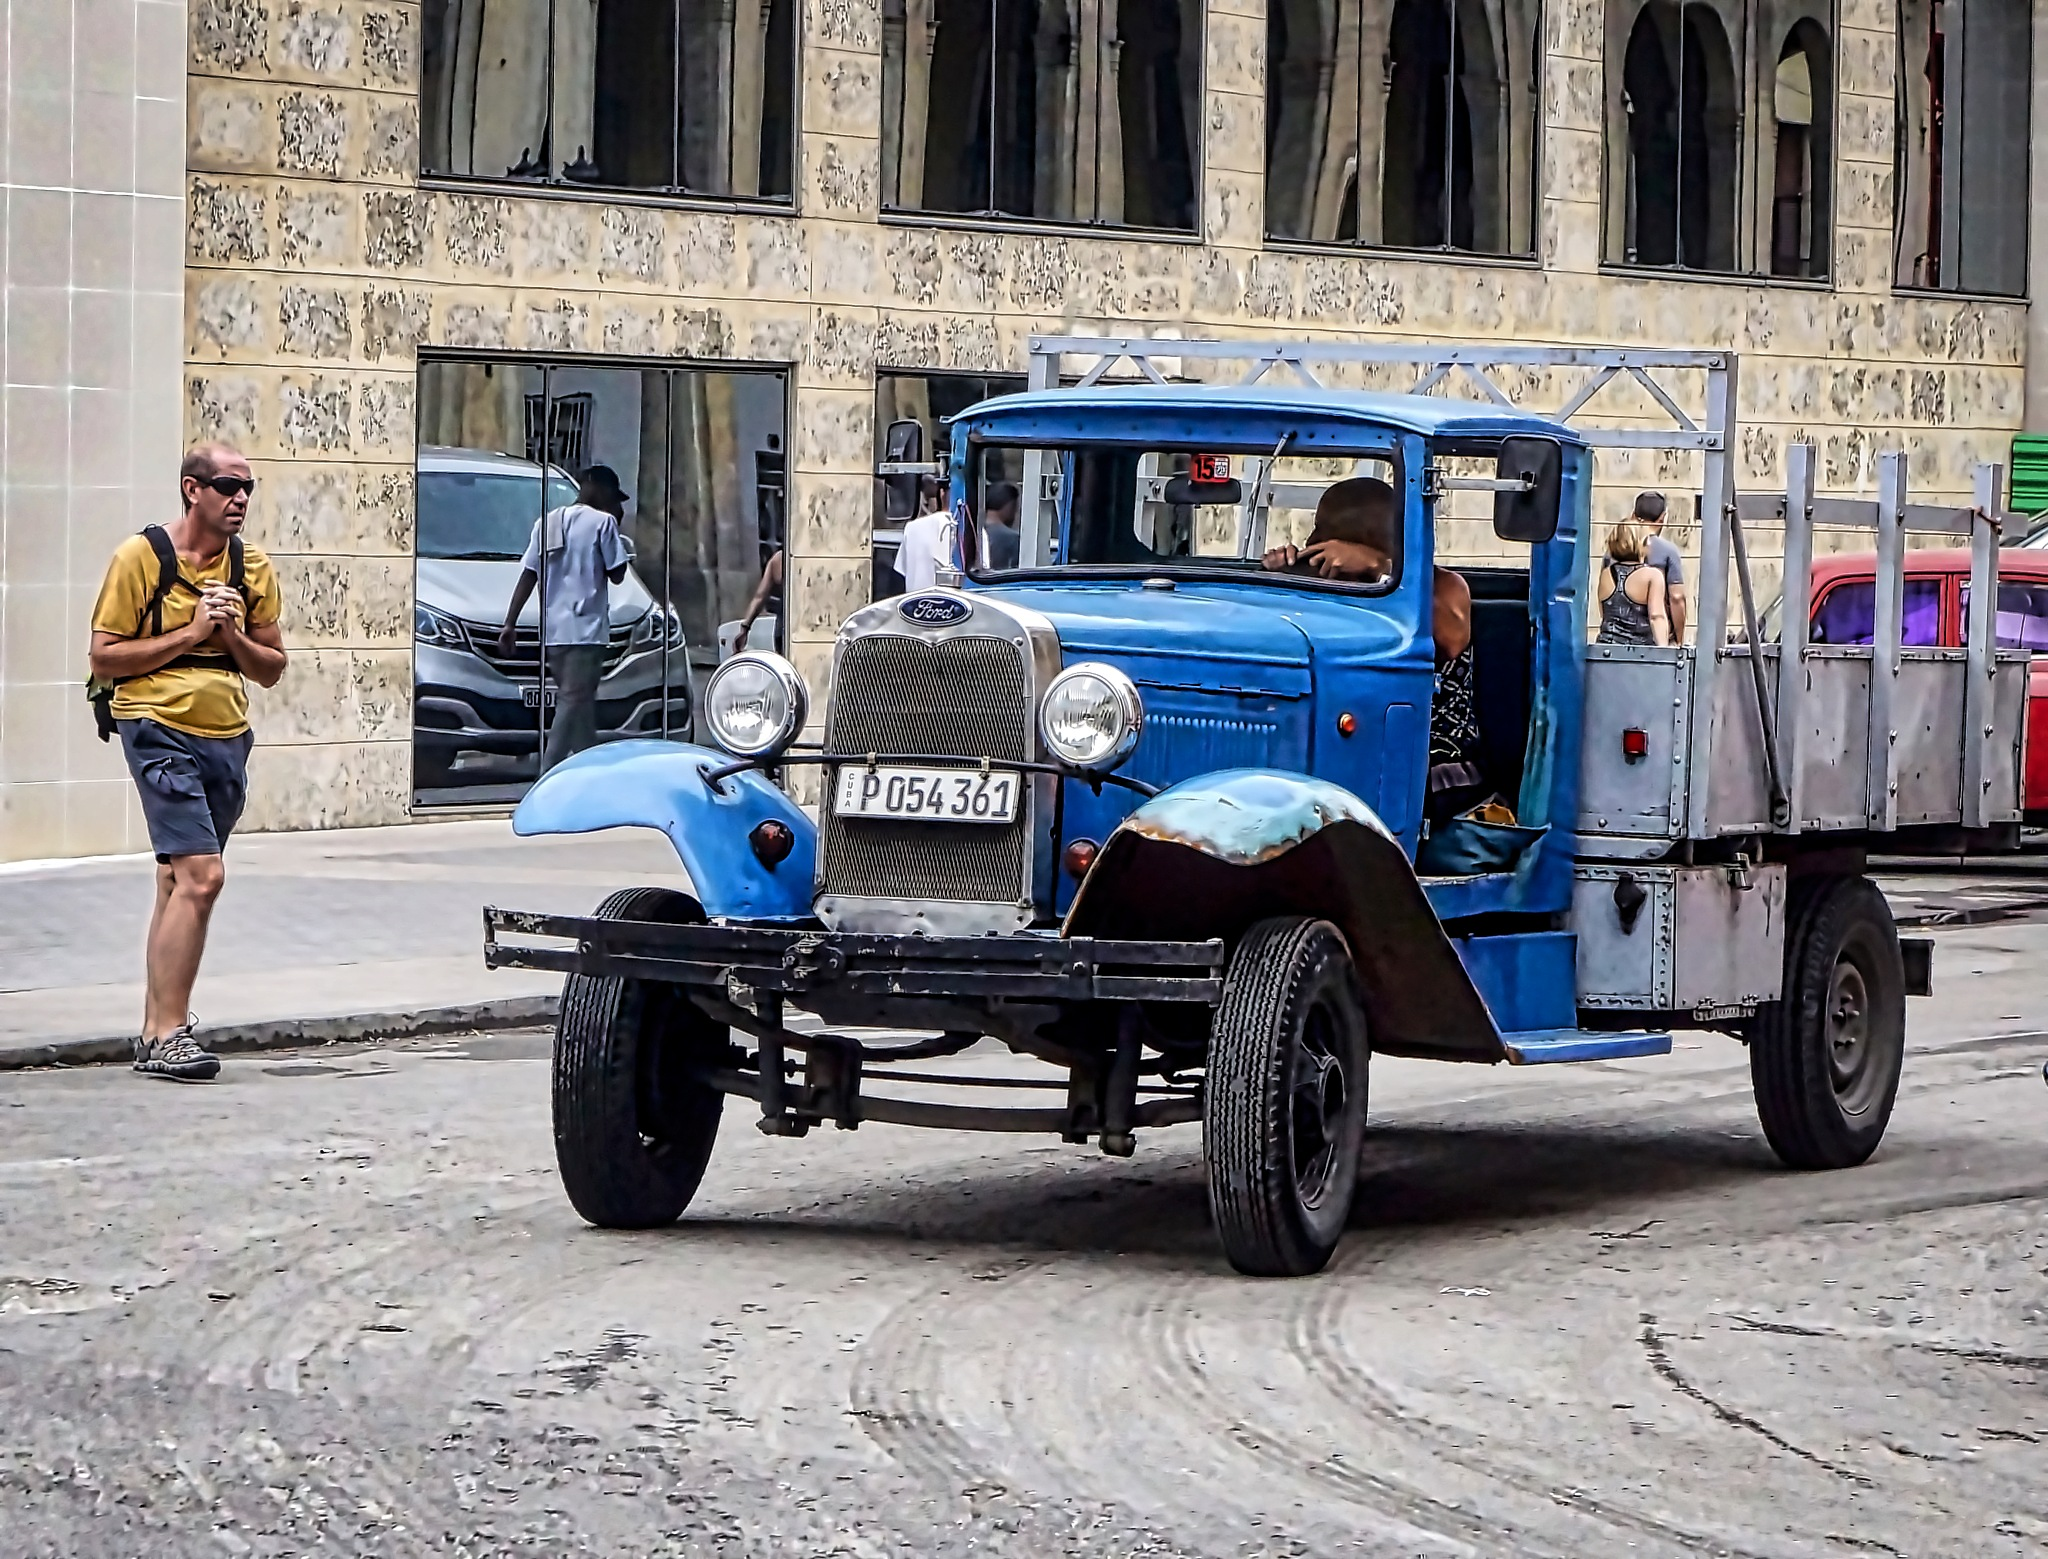 1930's Old Ford Blue Truck by Harrison Hanville